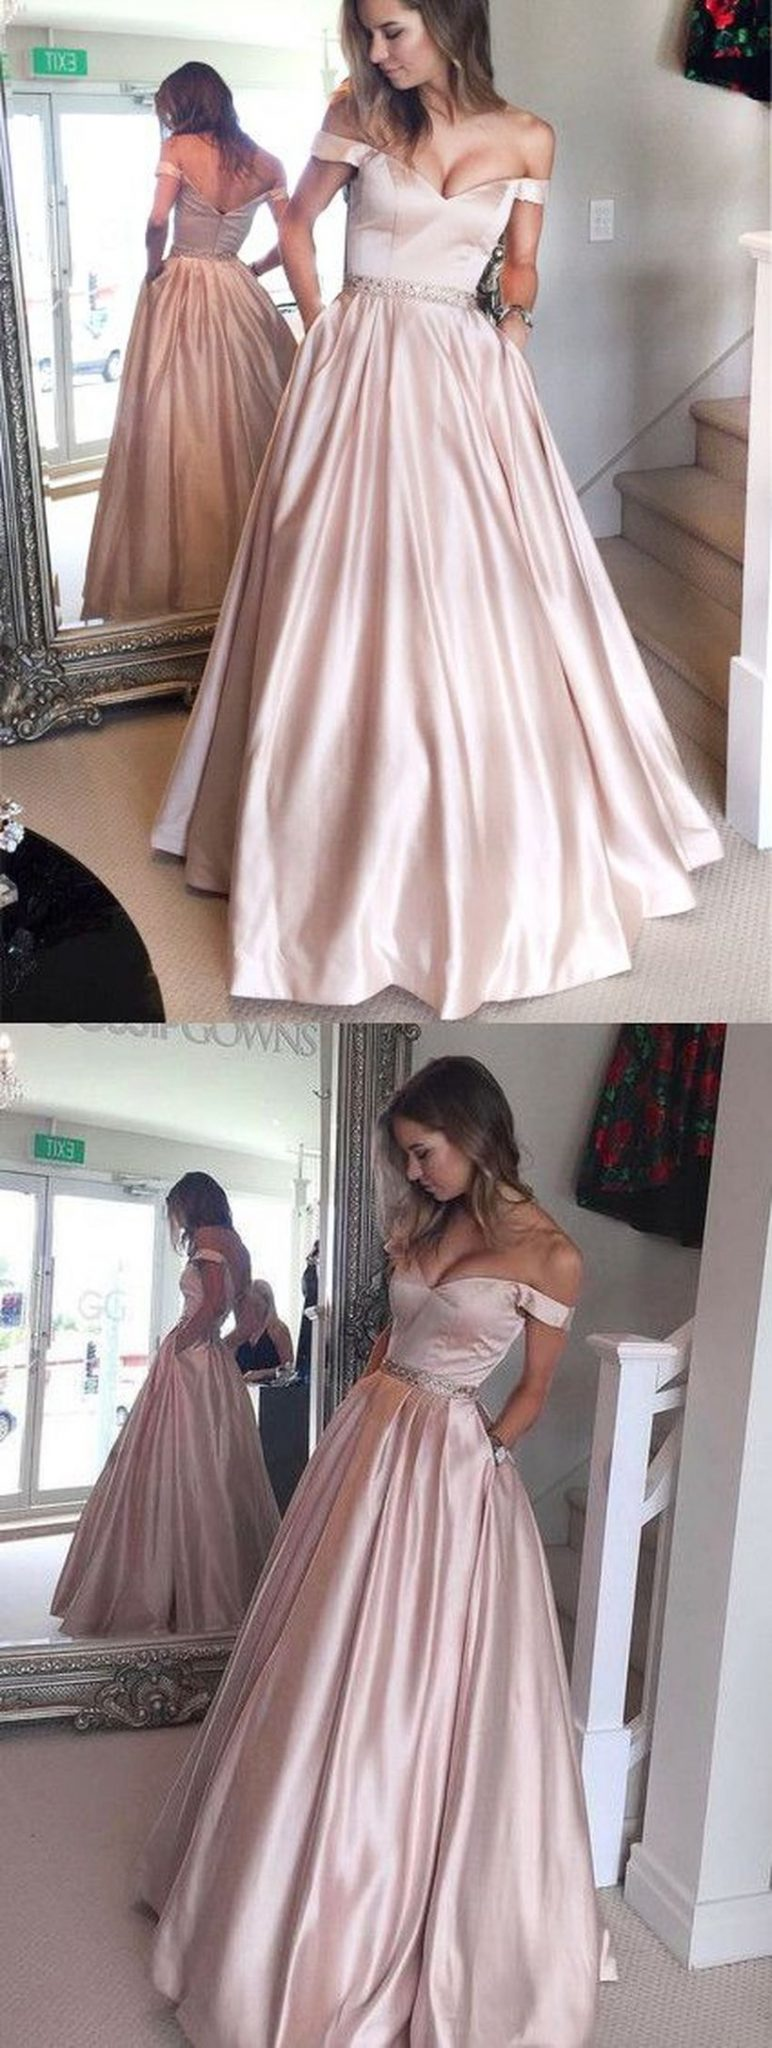 Gorgeous prom dresses for teens ideas 2017 46